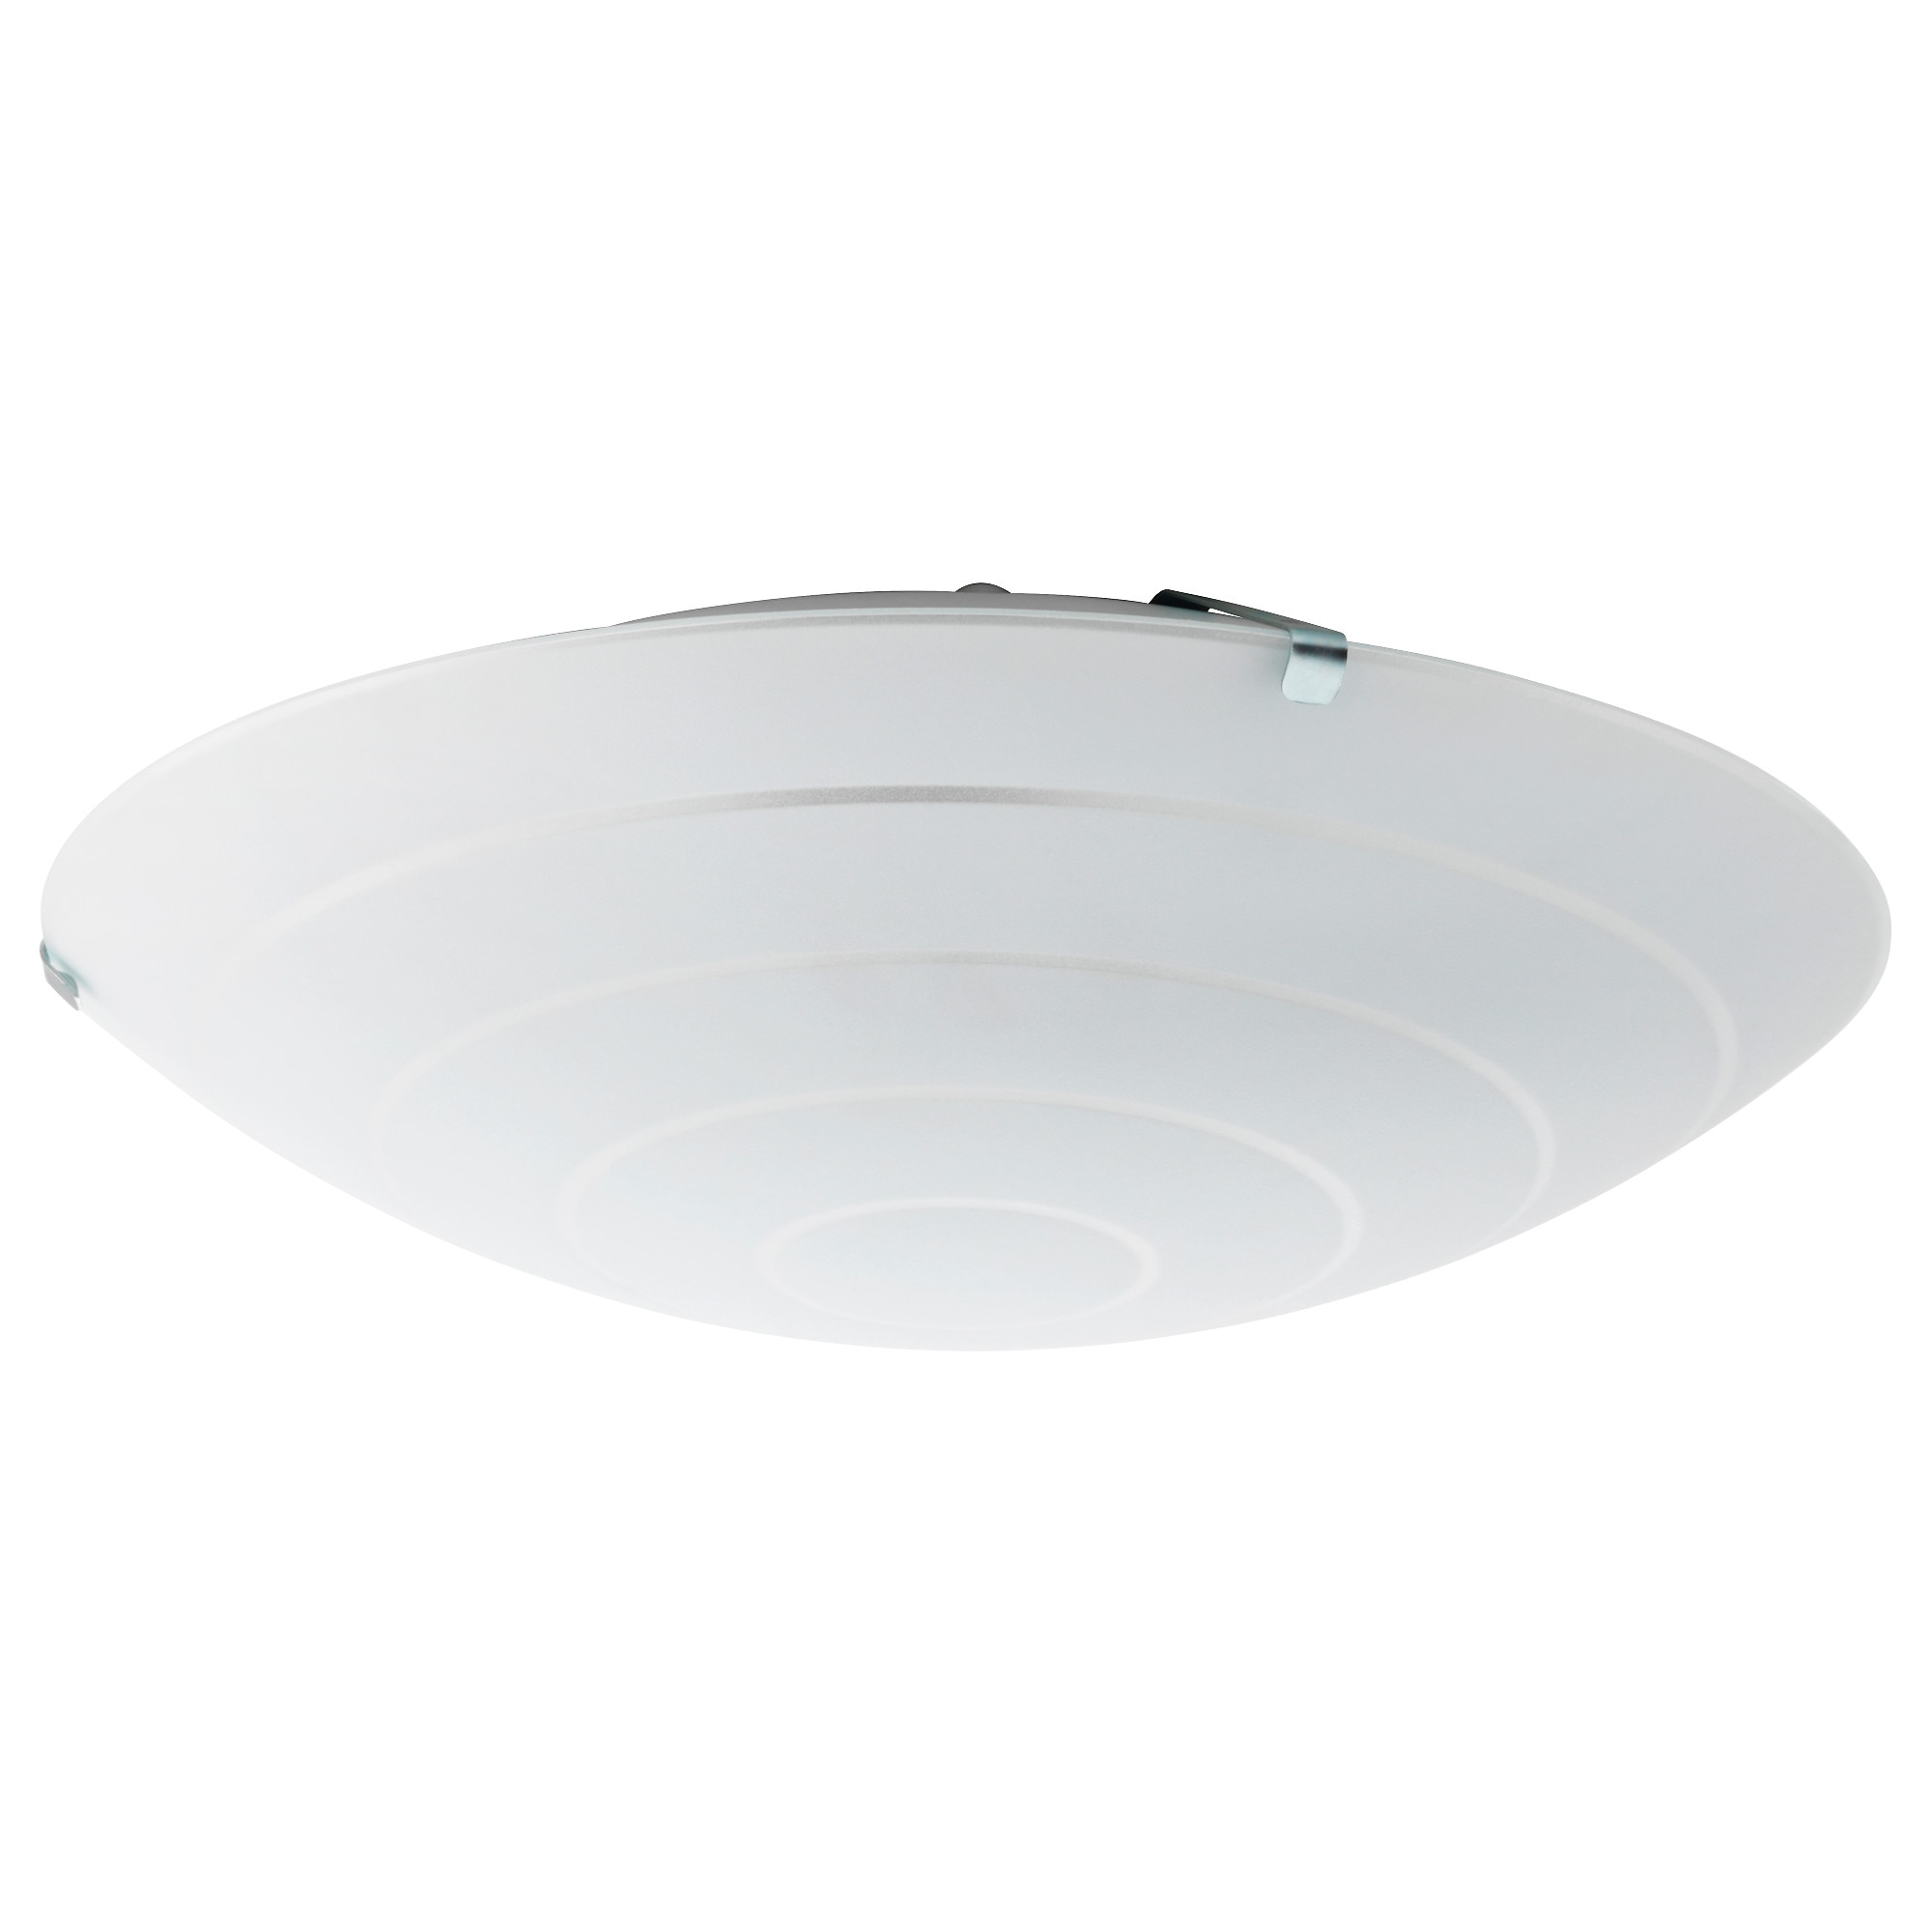 HYBY Ceiling Lamp   IKEA